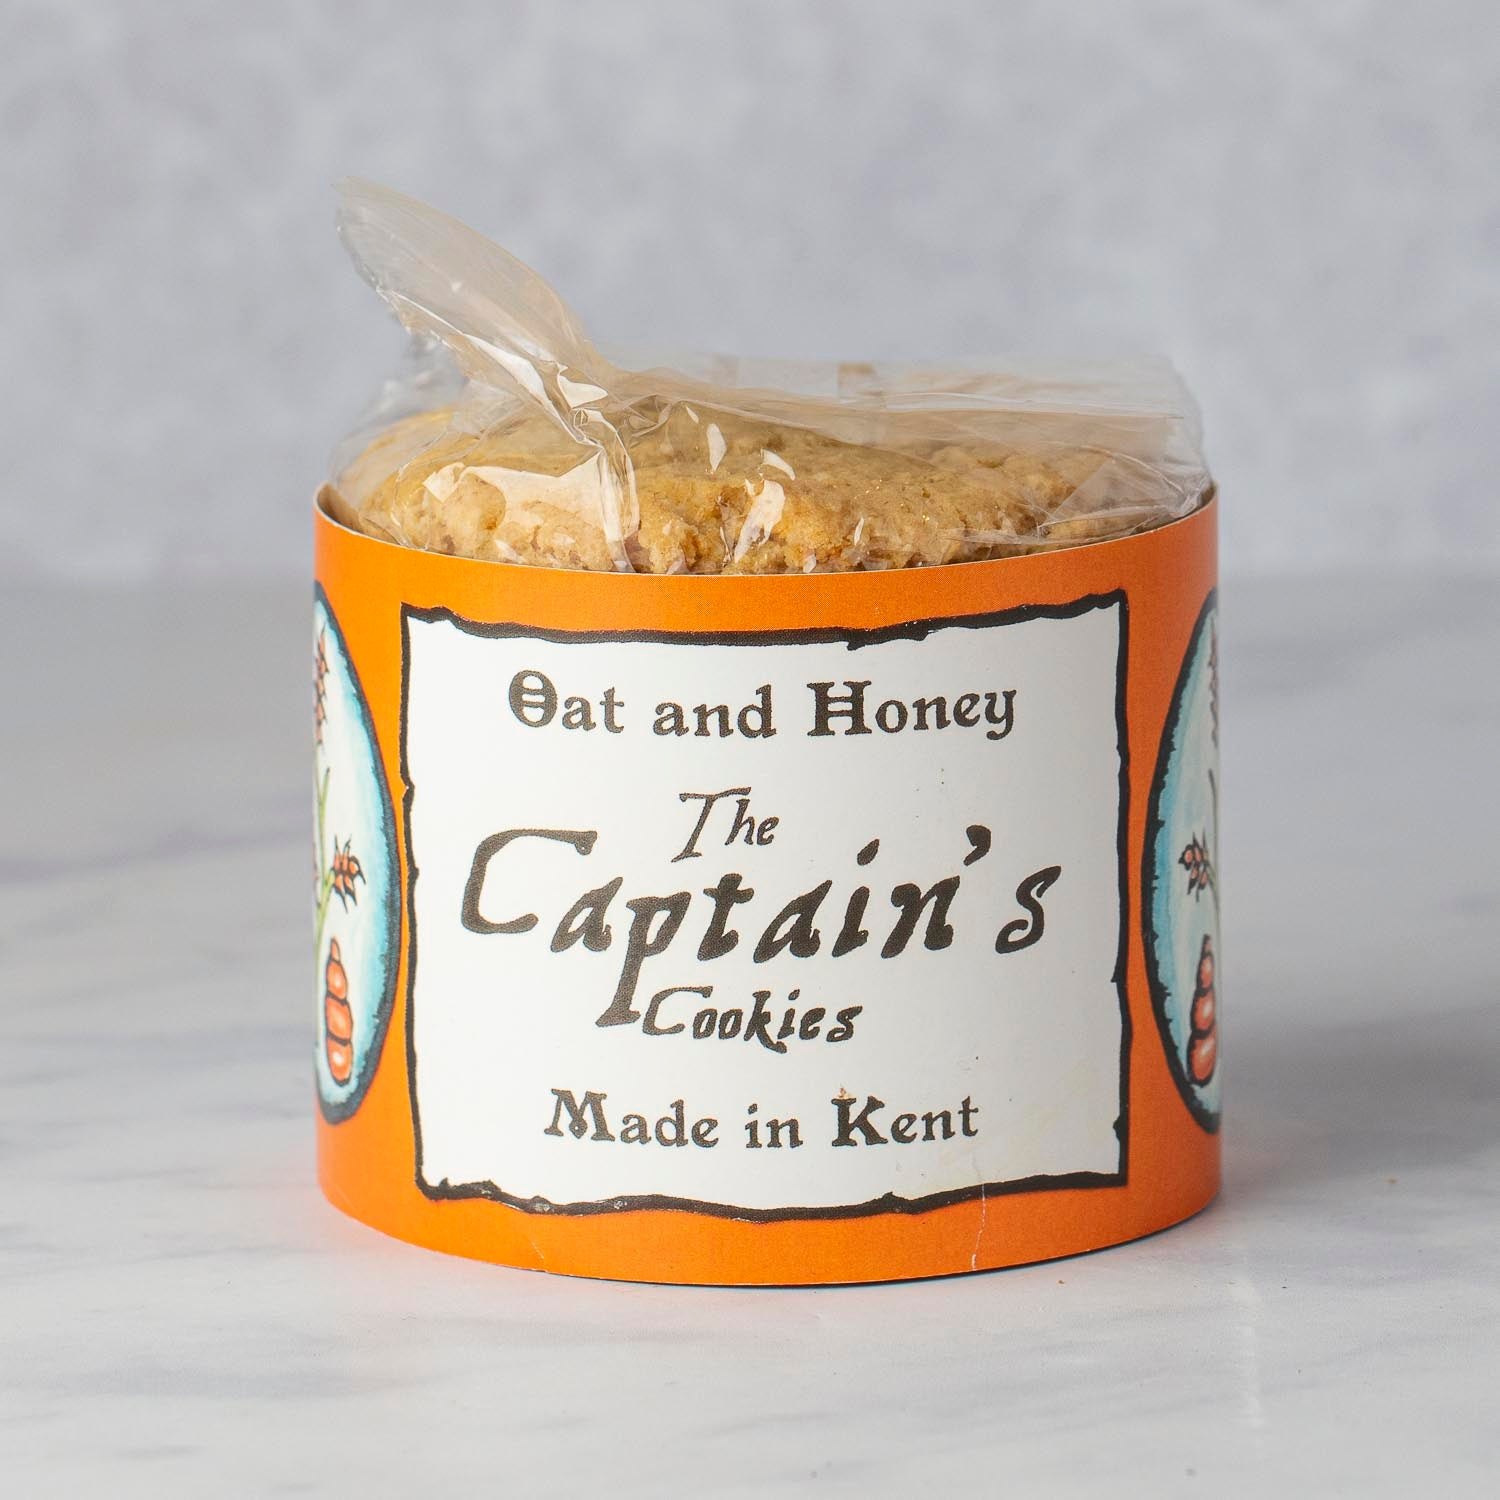 CAPTAIN'S COOKIES OAT & HONEY - 240g